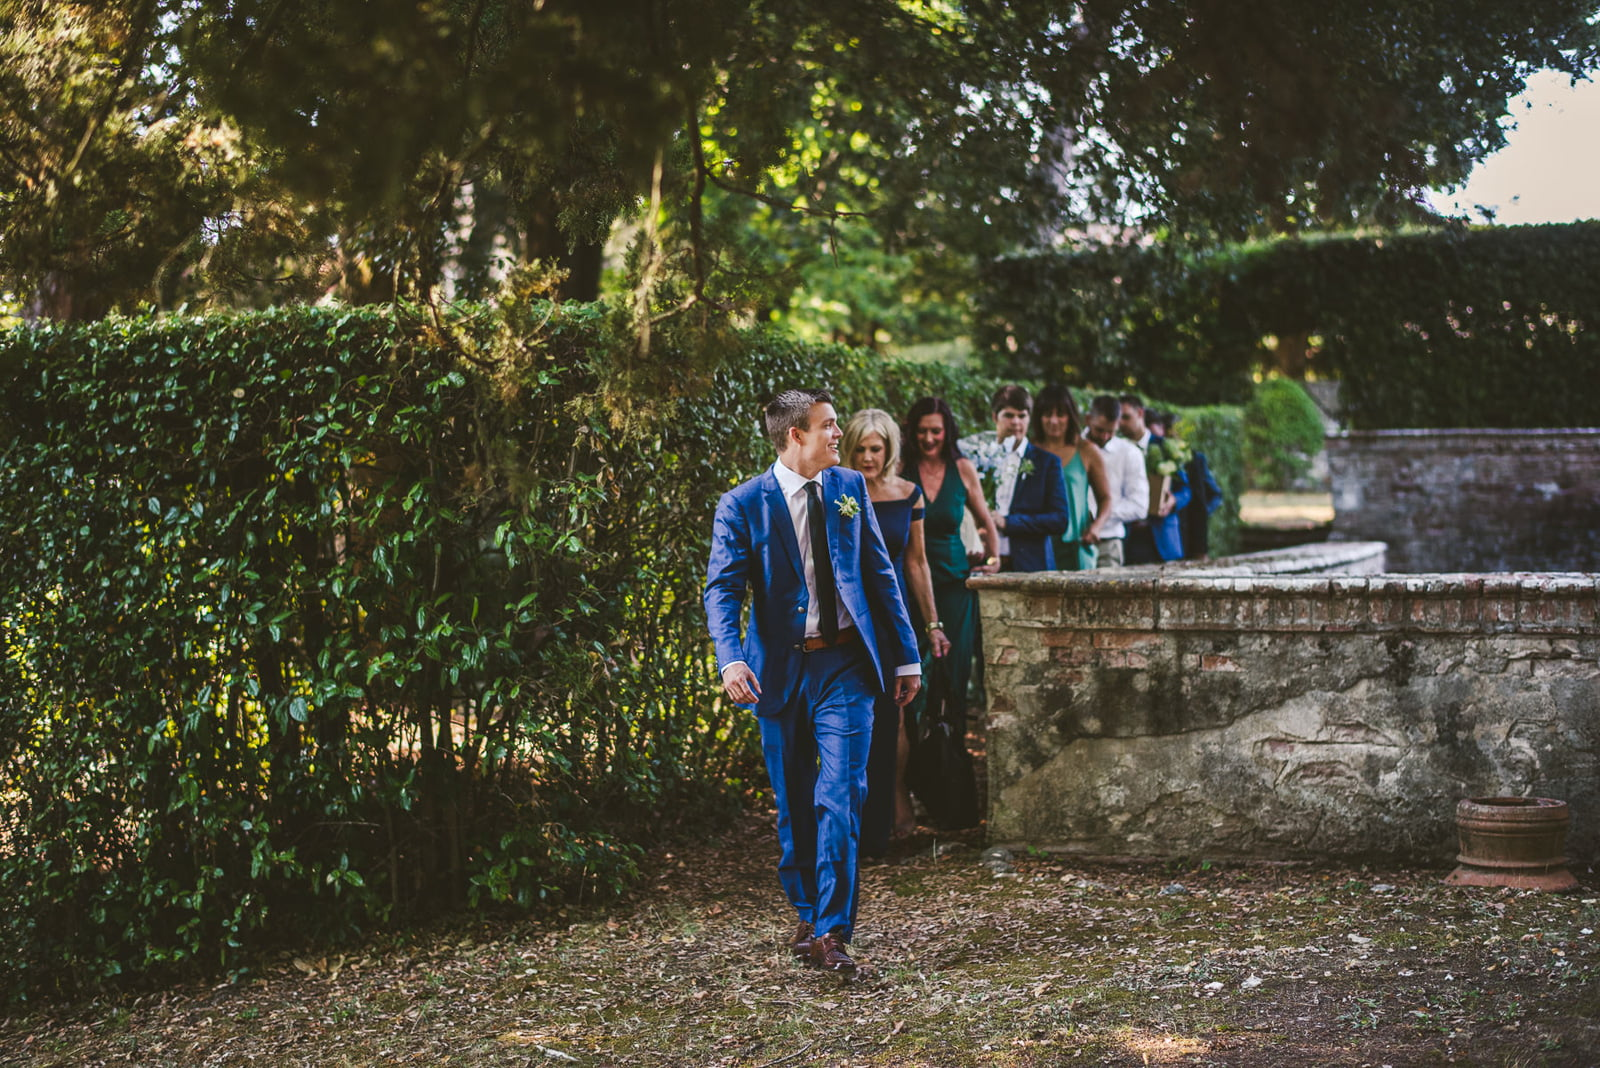 A+L Wedding at Montechiaro, Siena by Federico Pannacci 43